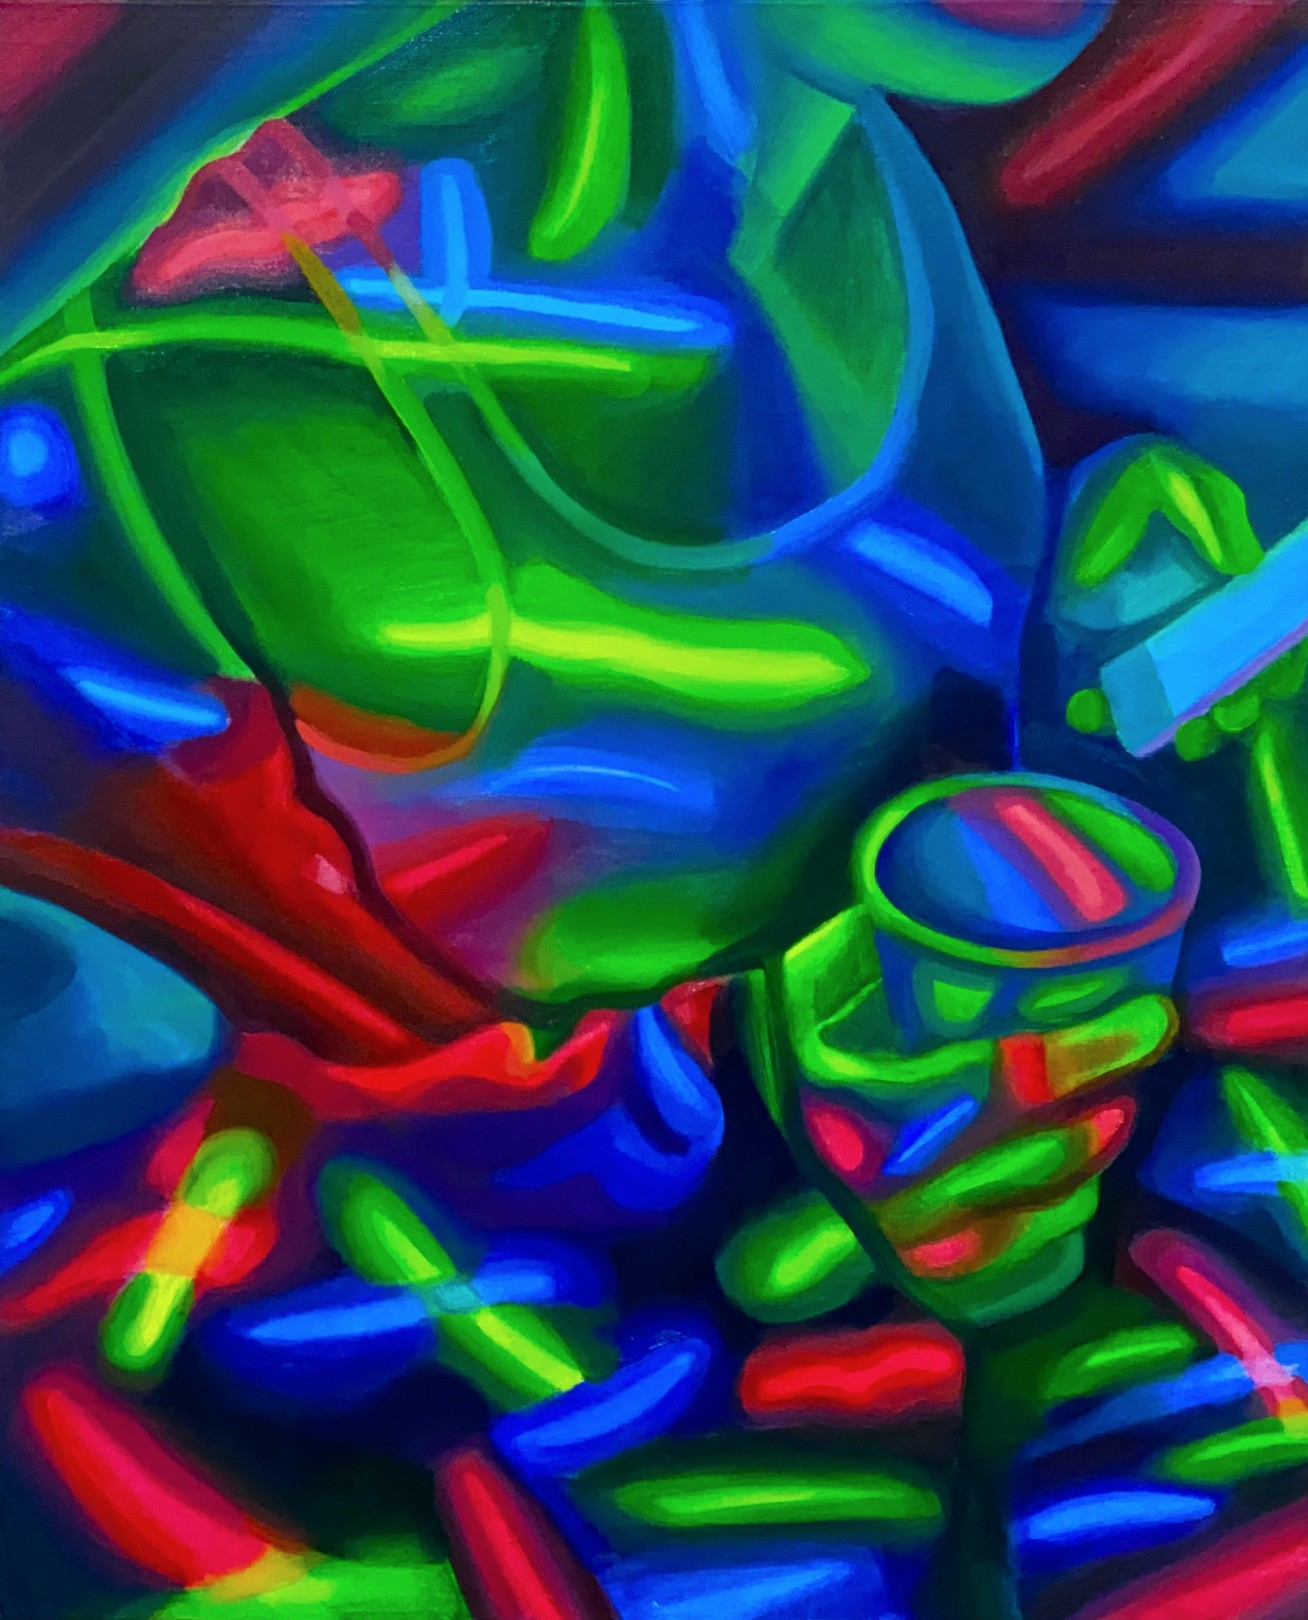 Cup Crop, 2021 Oil on canvas 51 x 41 cm. / 20 x 16 in.